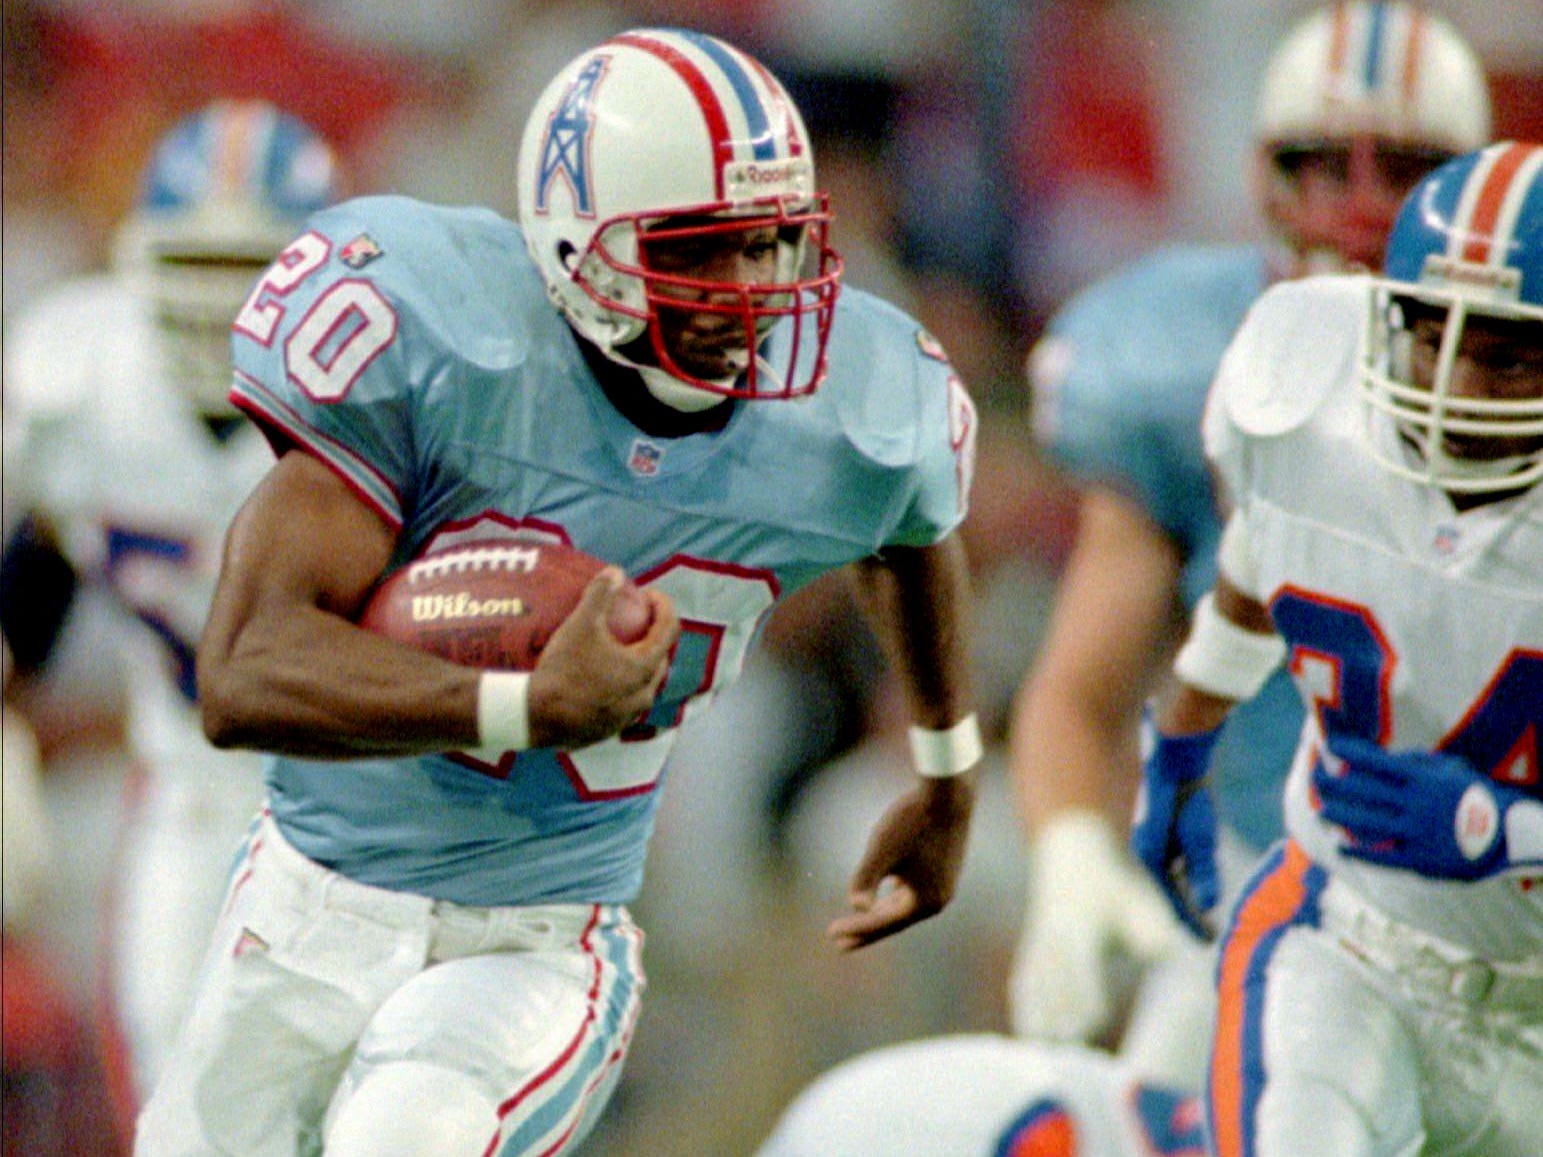 Houston Oilers running back Rodney Thomas (20) breaks free for a 74-yard touchdown run in the first quarter against the Denver Broncos Nov. 26, 1995 in Houston.